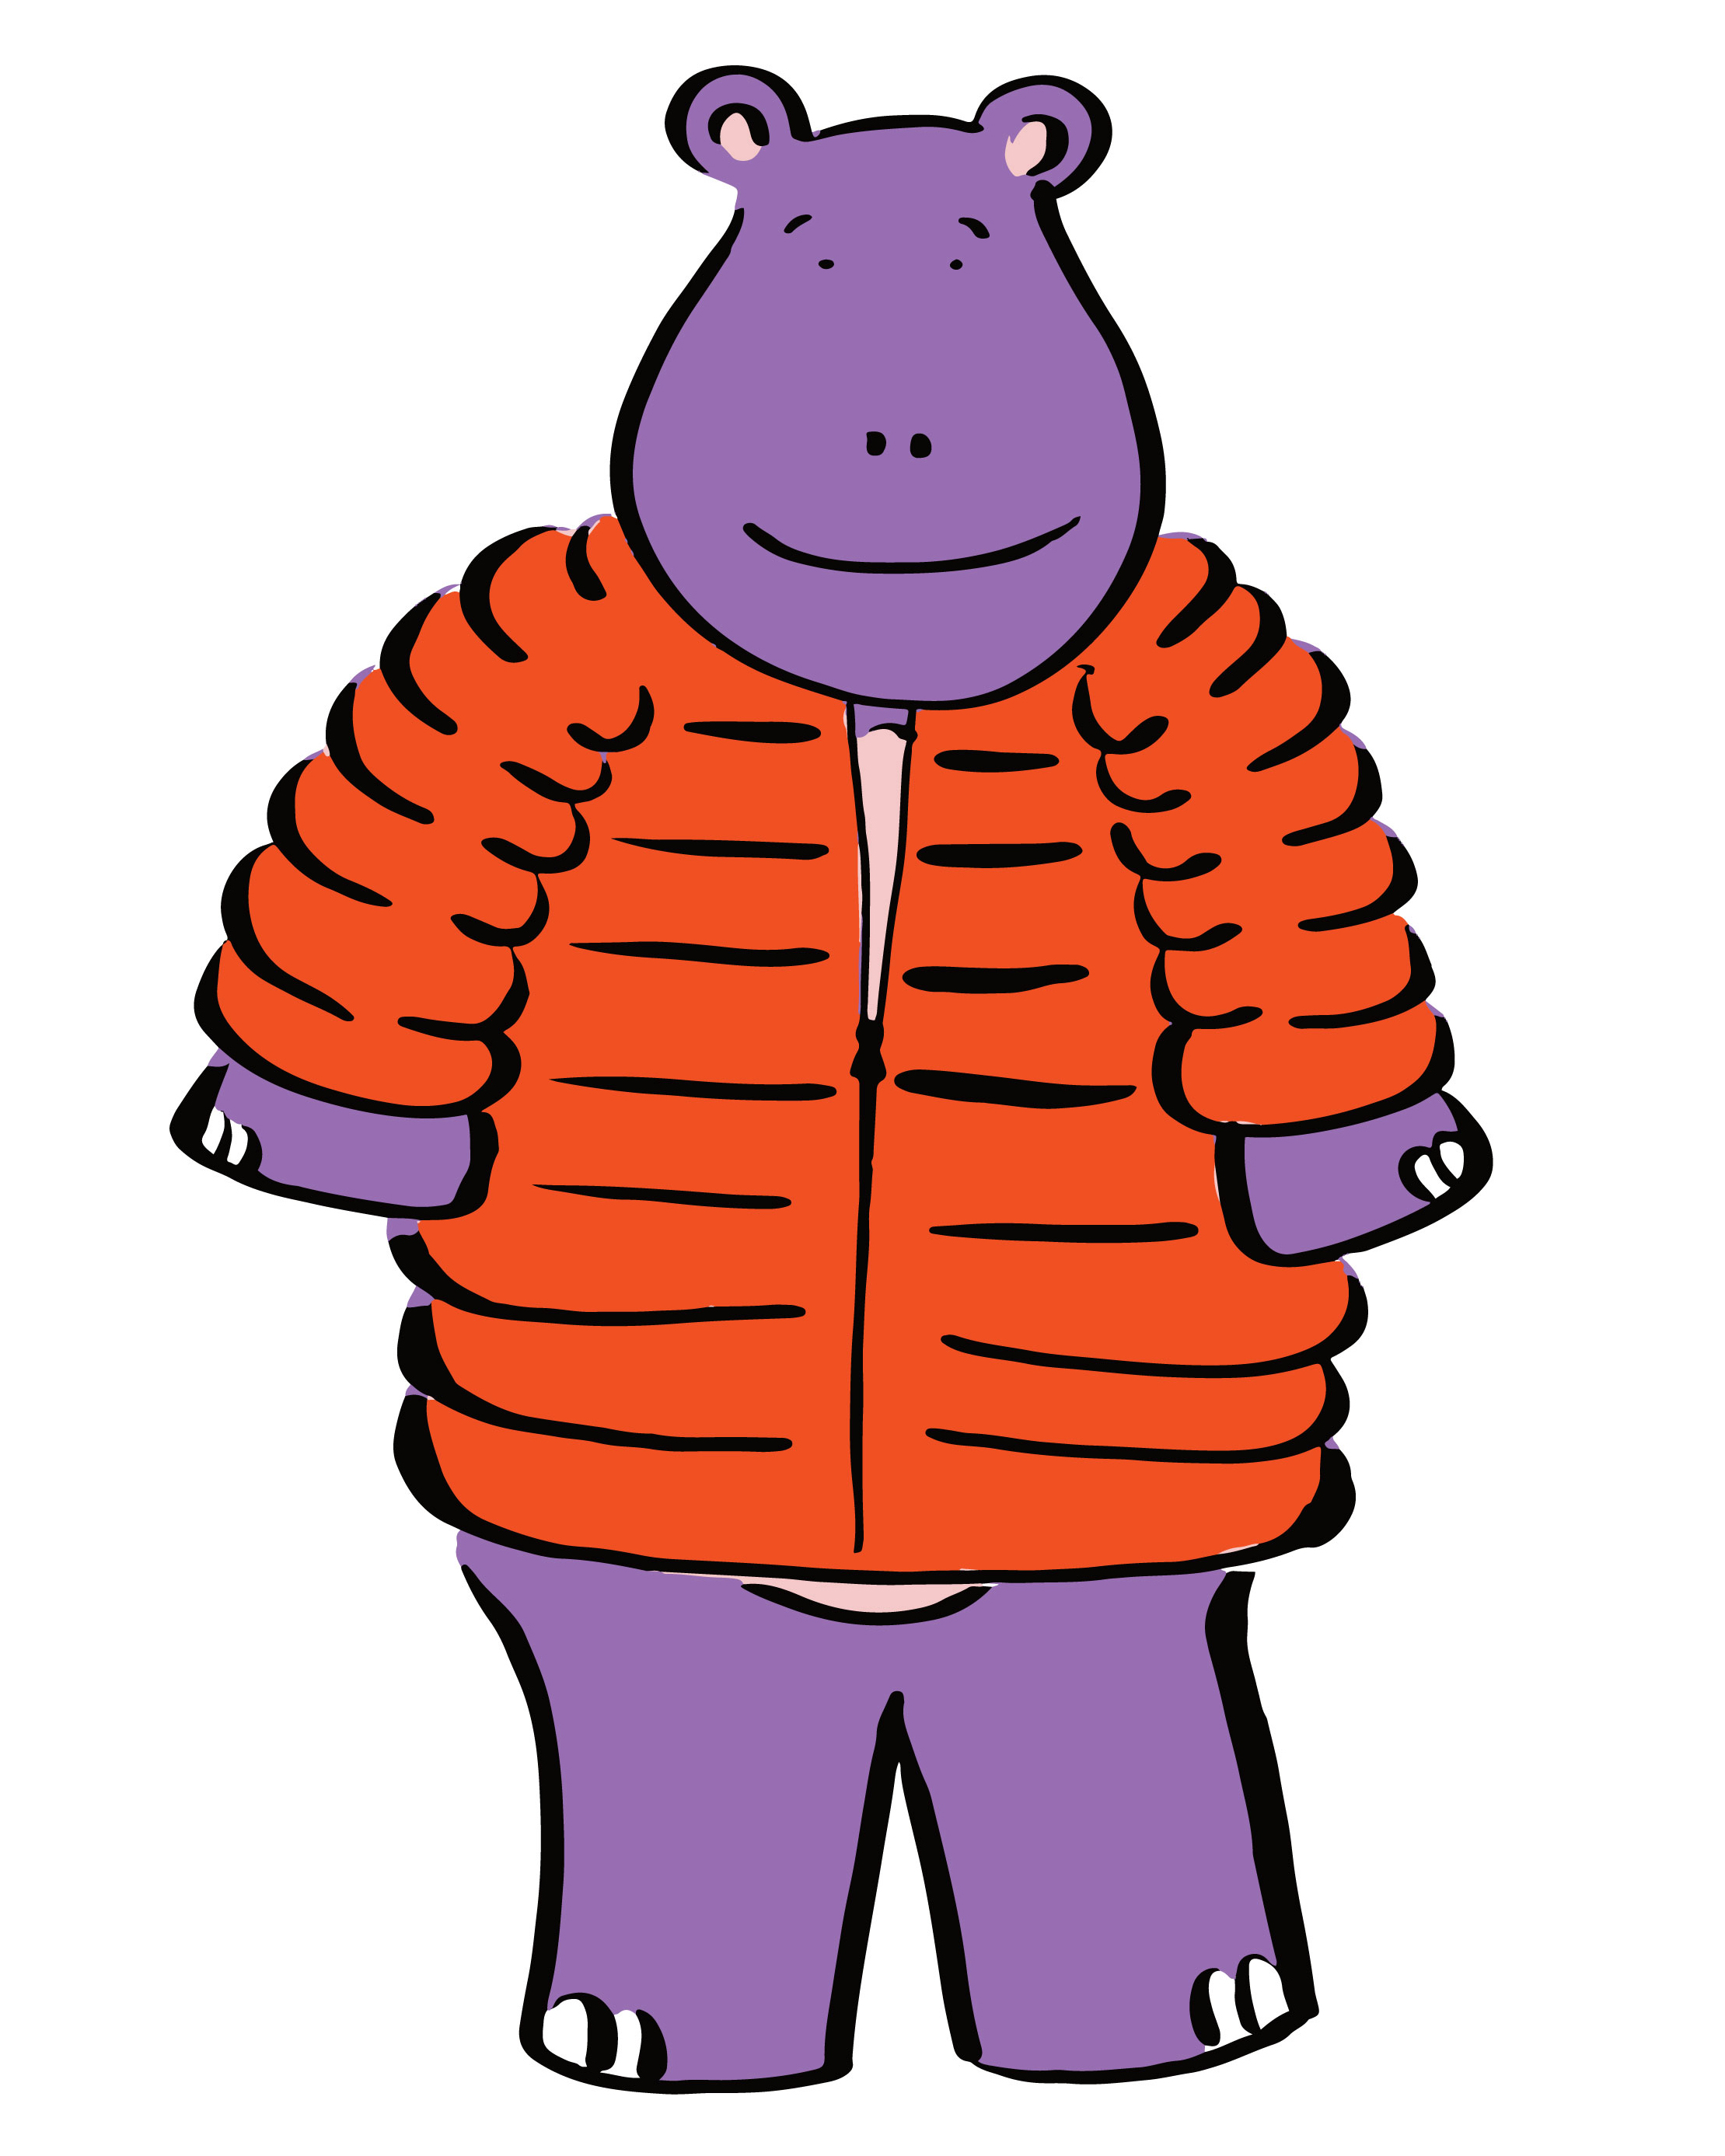 """Cara Harris • Nashville, TN   @caralouise_id    This is a character I've been developing: Hilary the Hippo. Hilary is a fun-loving hippo who learns life lessons and experiences emotions just like people do. When seeing the prompt """"puff"""" it occurred to me that Hilary in a puffy jacket would both be hilarious and probably cute."""